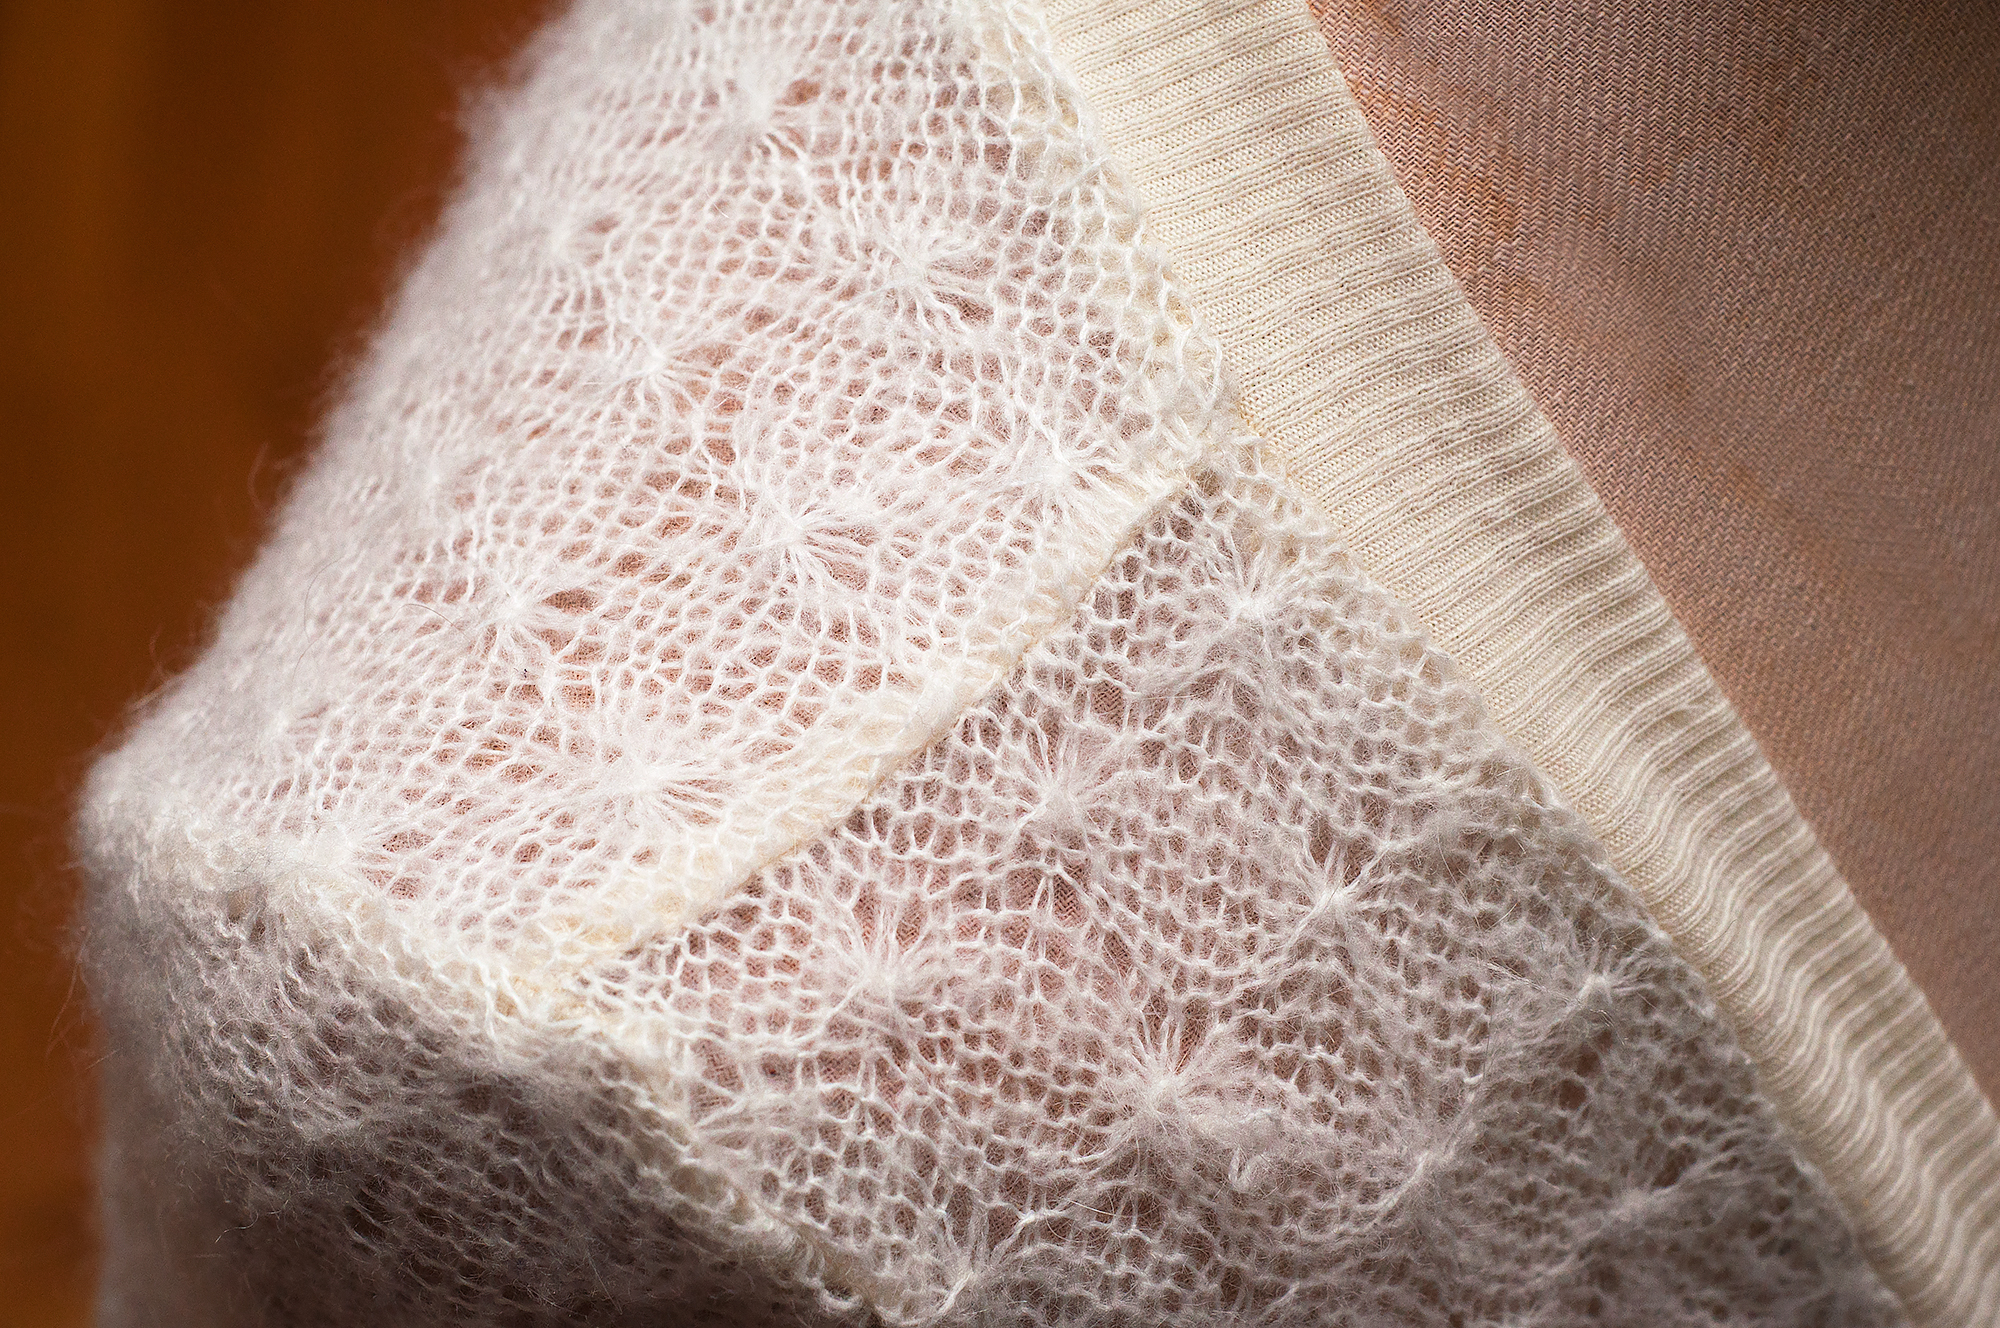 Using clear elastic to stabilize shoulder seams on knits